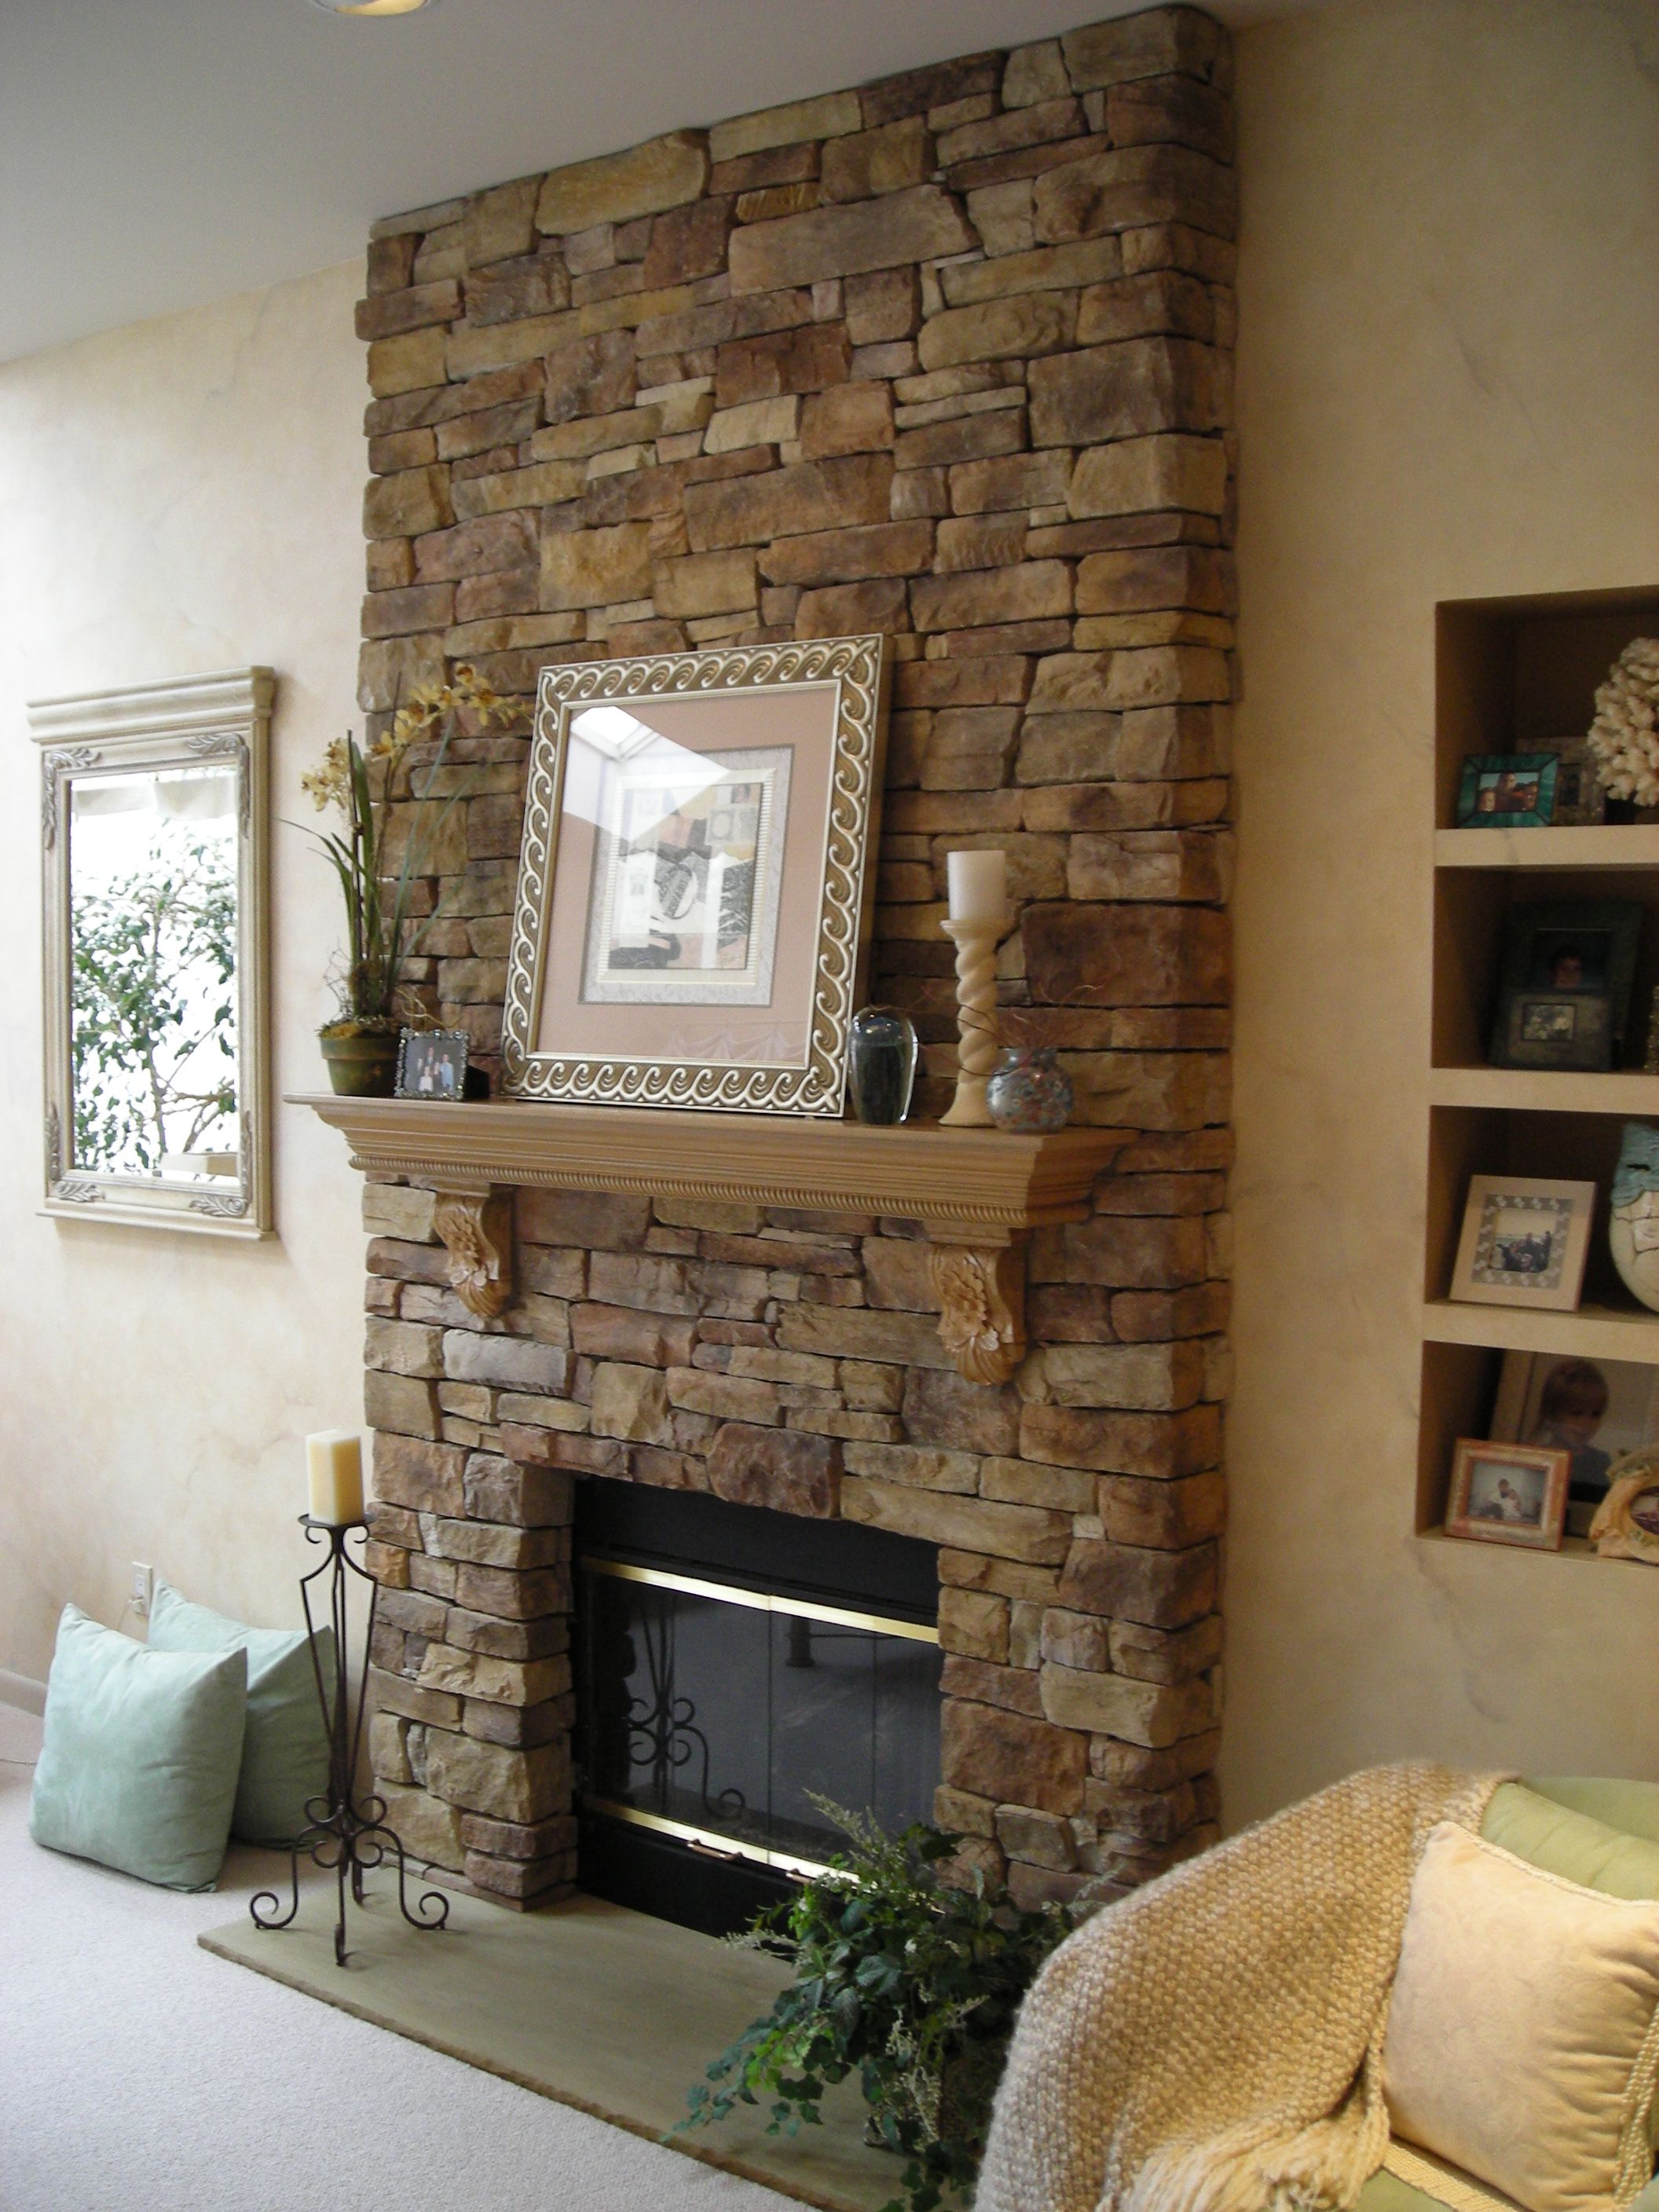 40 Beautiful Living Room Designs With Fireplace - Interior ...